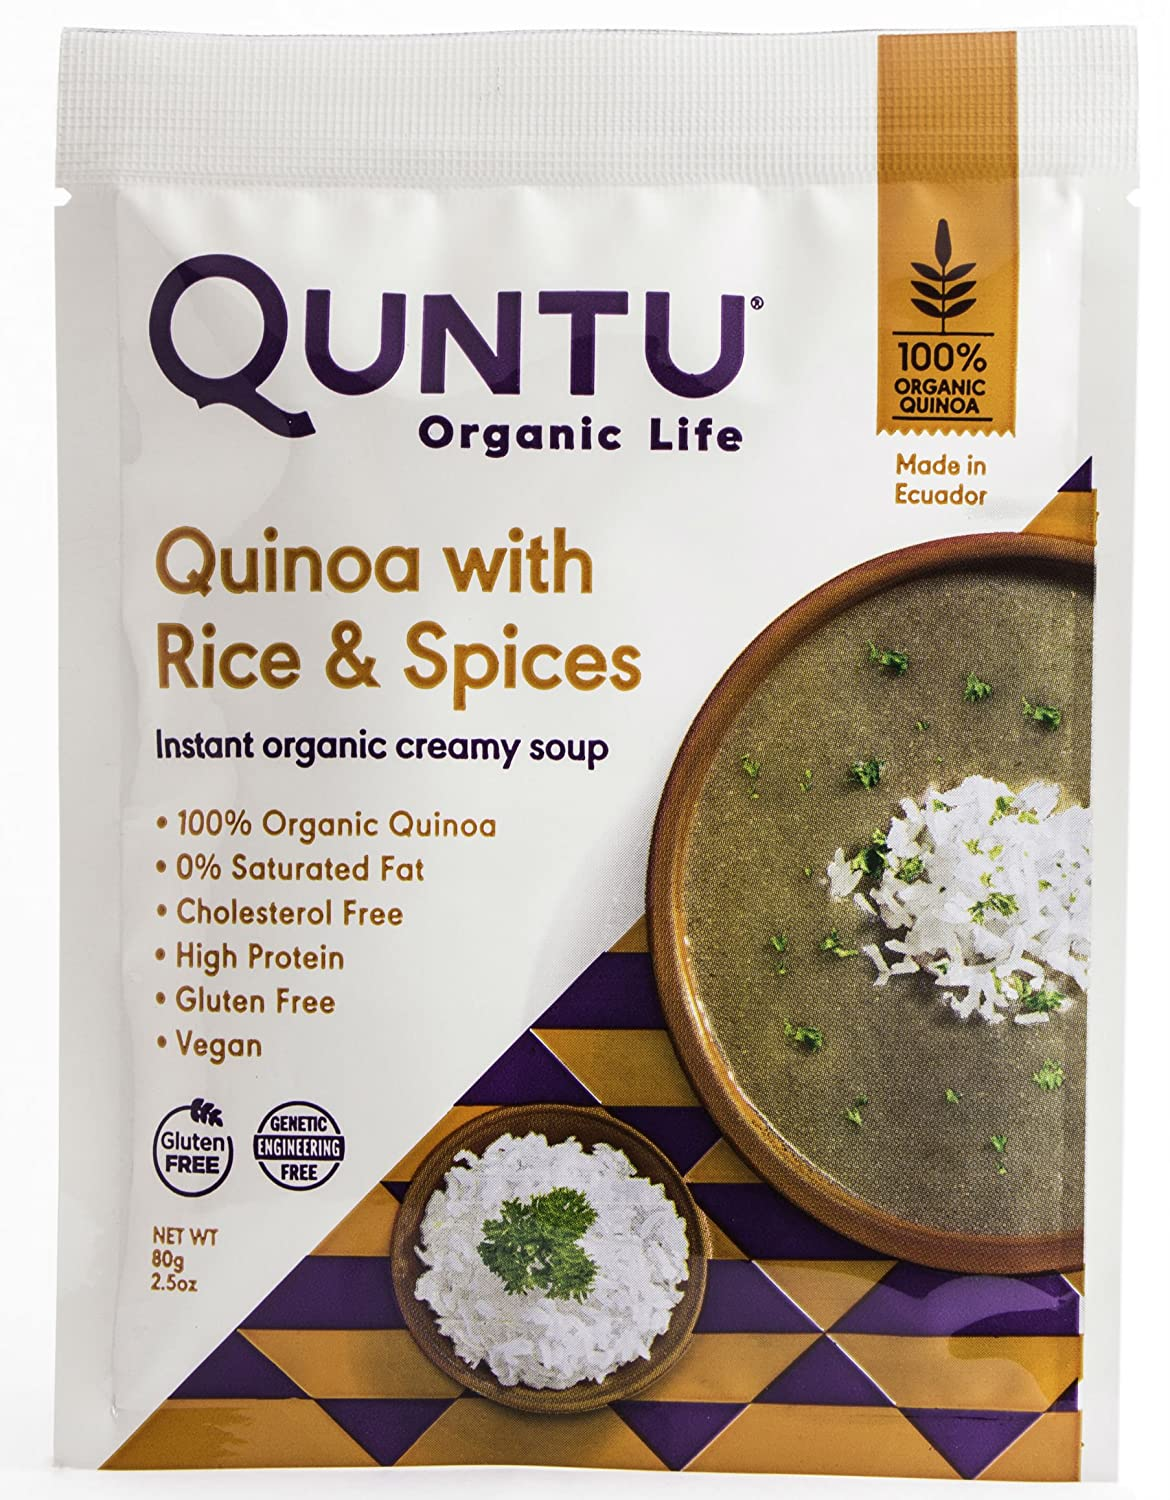 Quntu Instant Organic Quinoa Creamy Soup with Mushrooms, 2.5 oz - 12 Pack: Amazon.com: Grocery & Gourmet Food